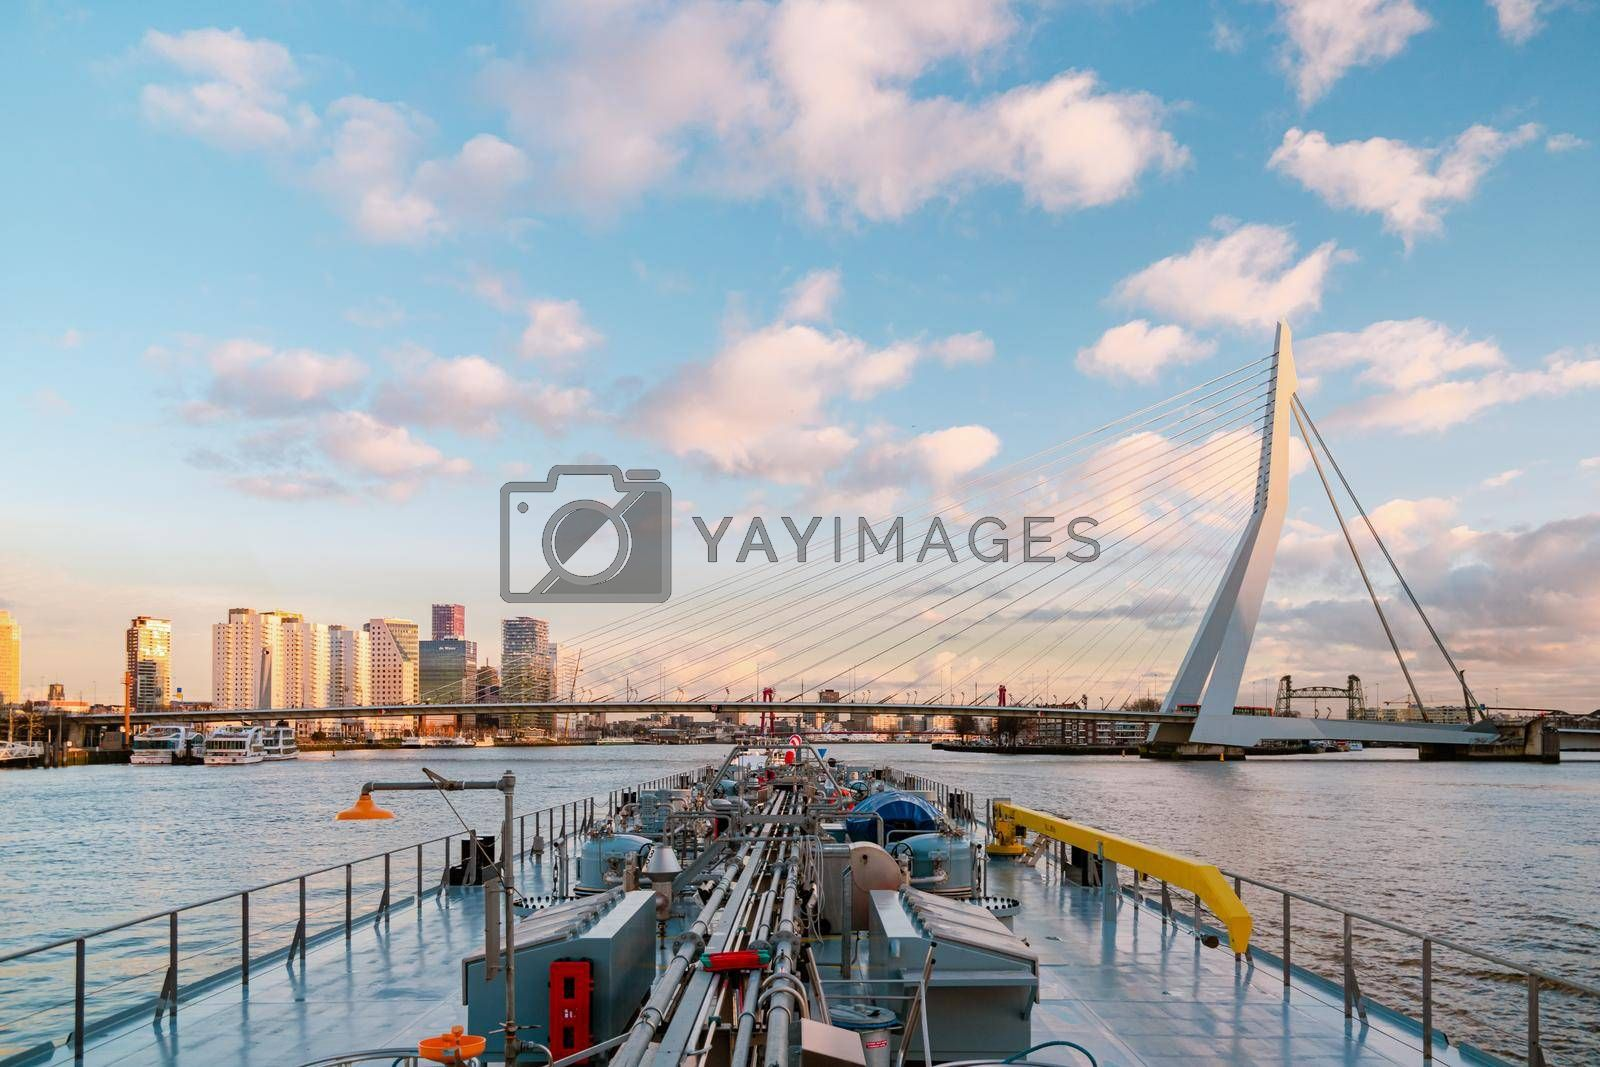 Binnenvaart, Translation Inlandshipping on the river Nieuwe Maas Rotterdam Netherlands during sunset hours, Gas tanker vessel Rotterdam oil and gas transport. Netherlands